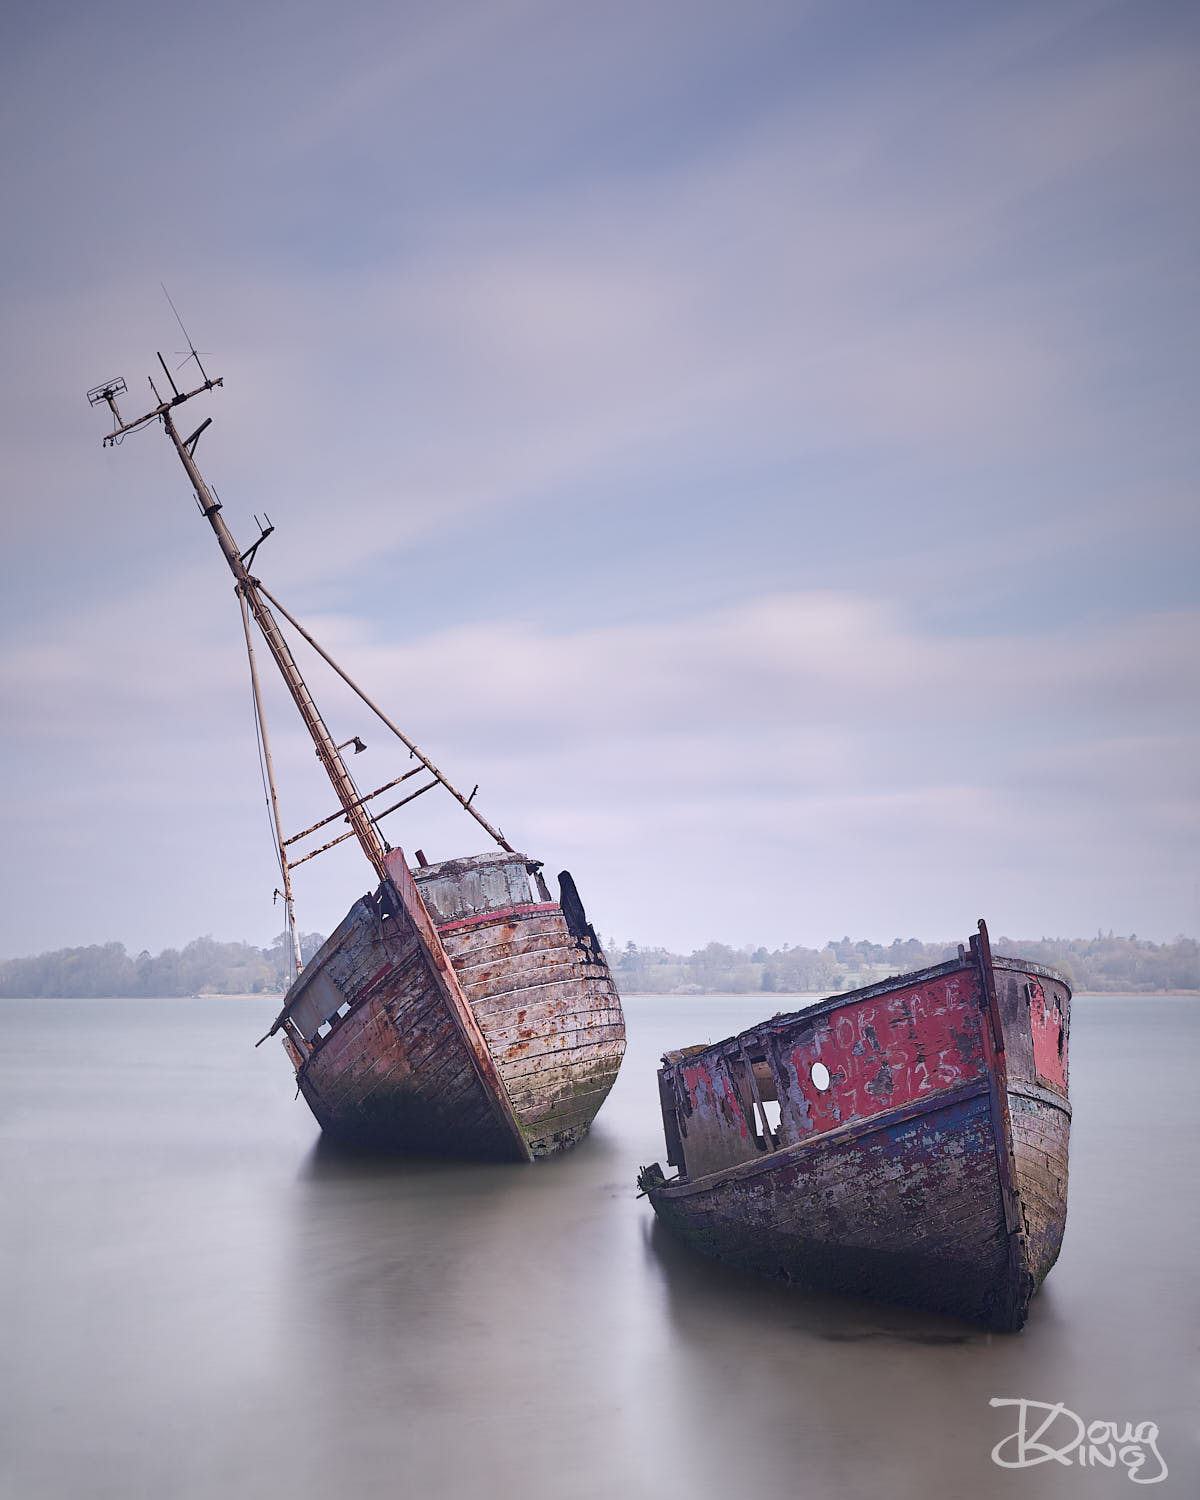 Rotting hulks of derelict boats at Pin Mill in Essex